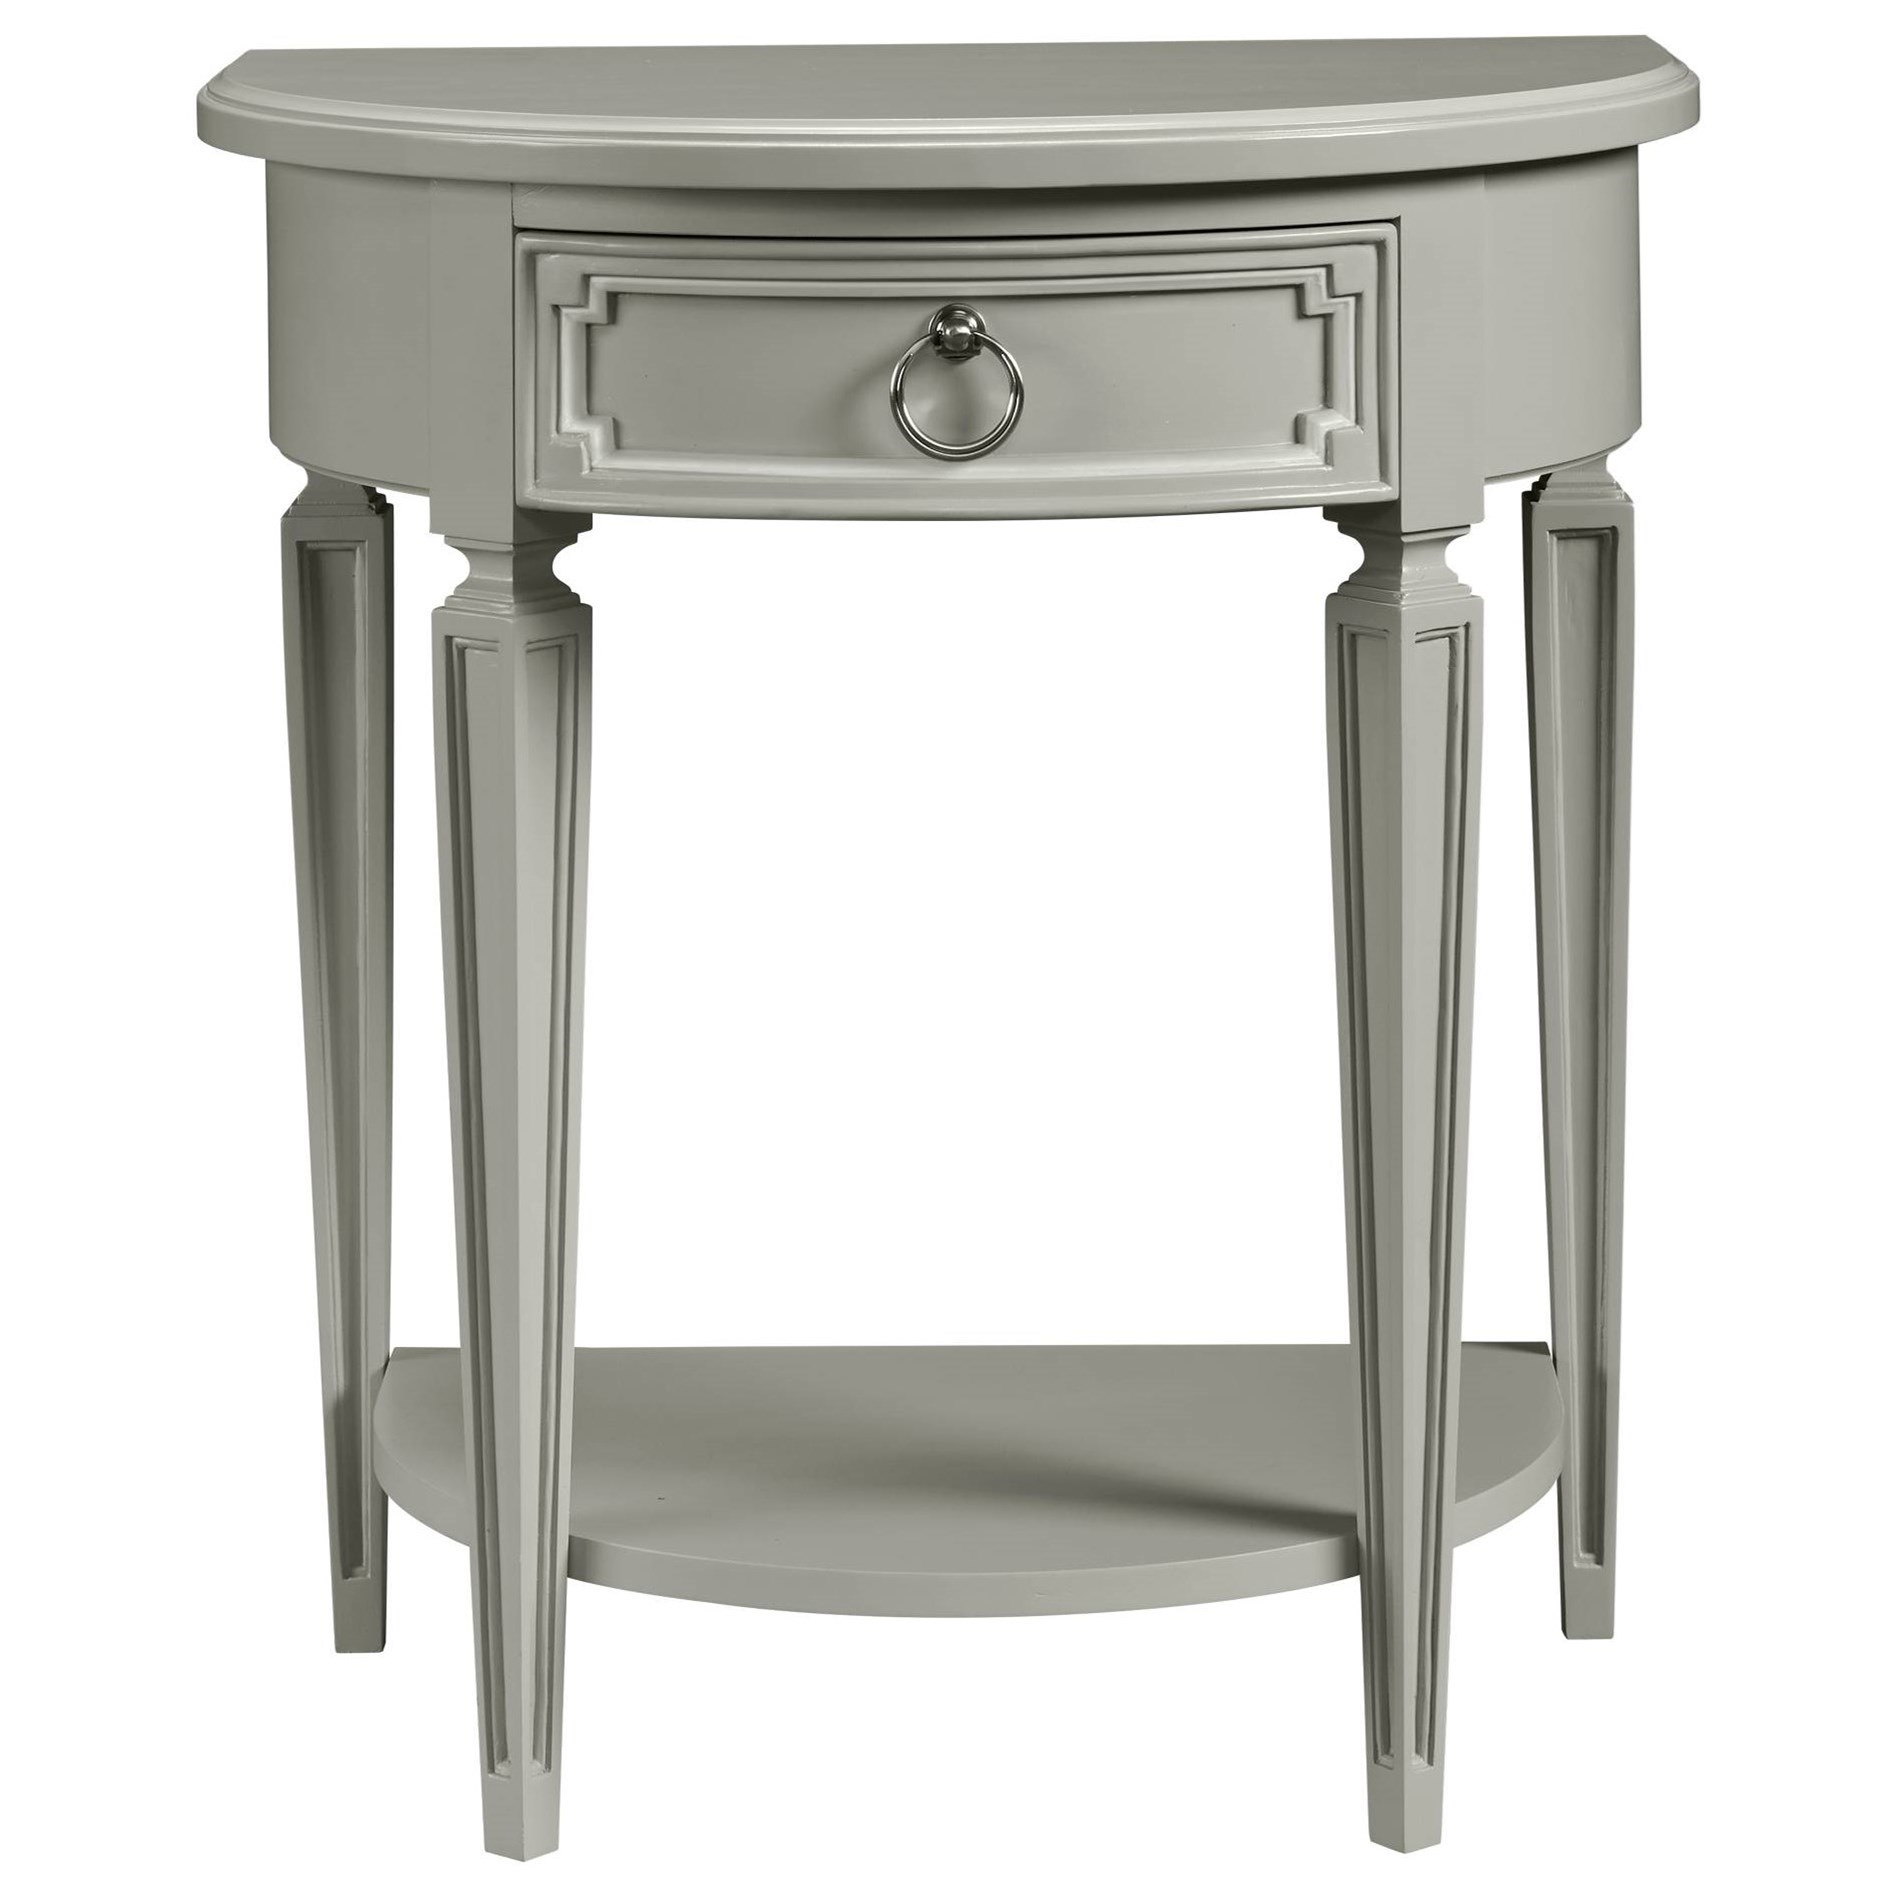 Stone & Leigh Furniture Clementine Court Bedside Table - Item Number: 537-53-80